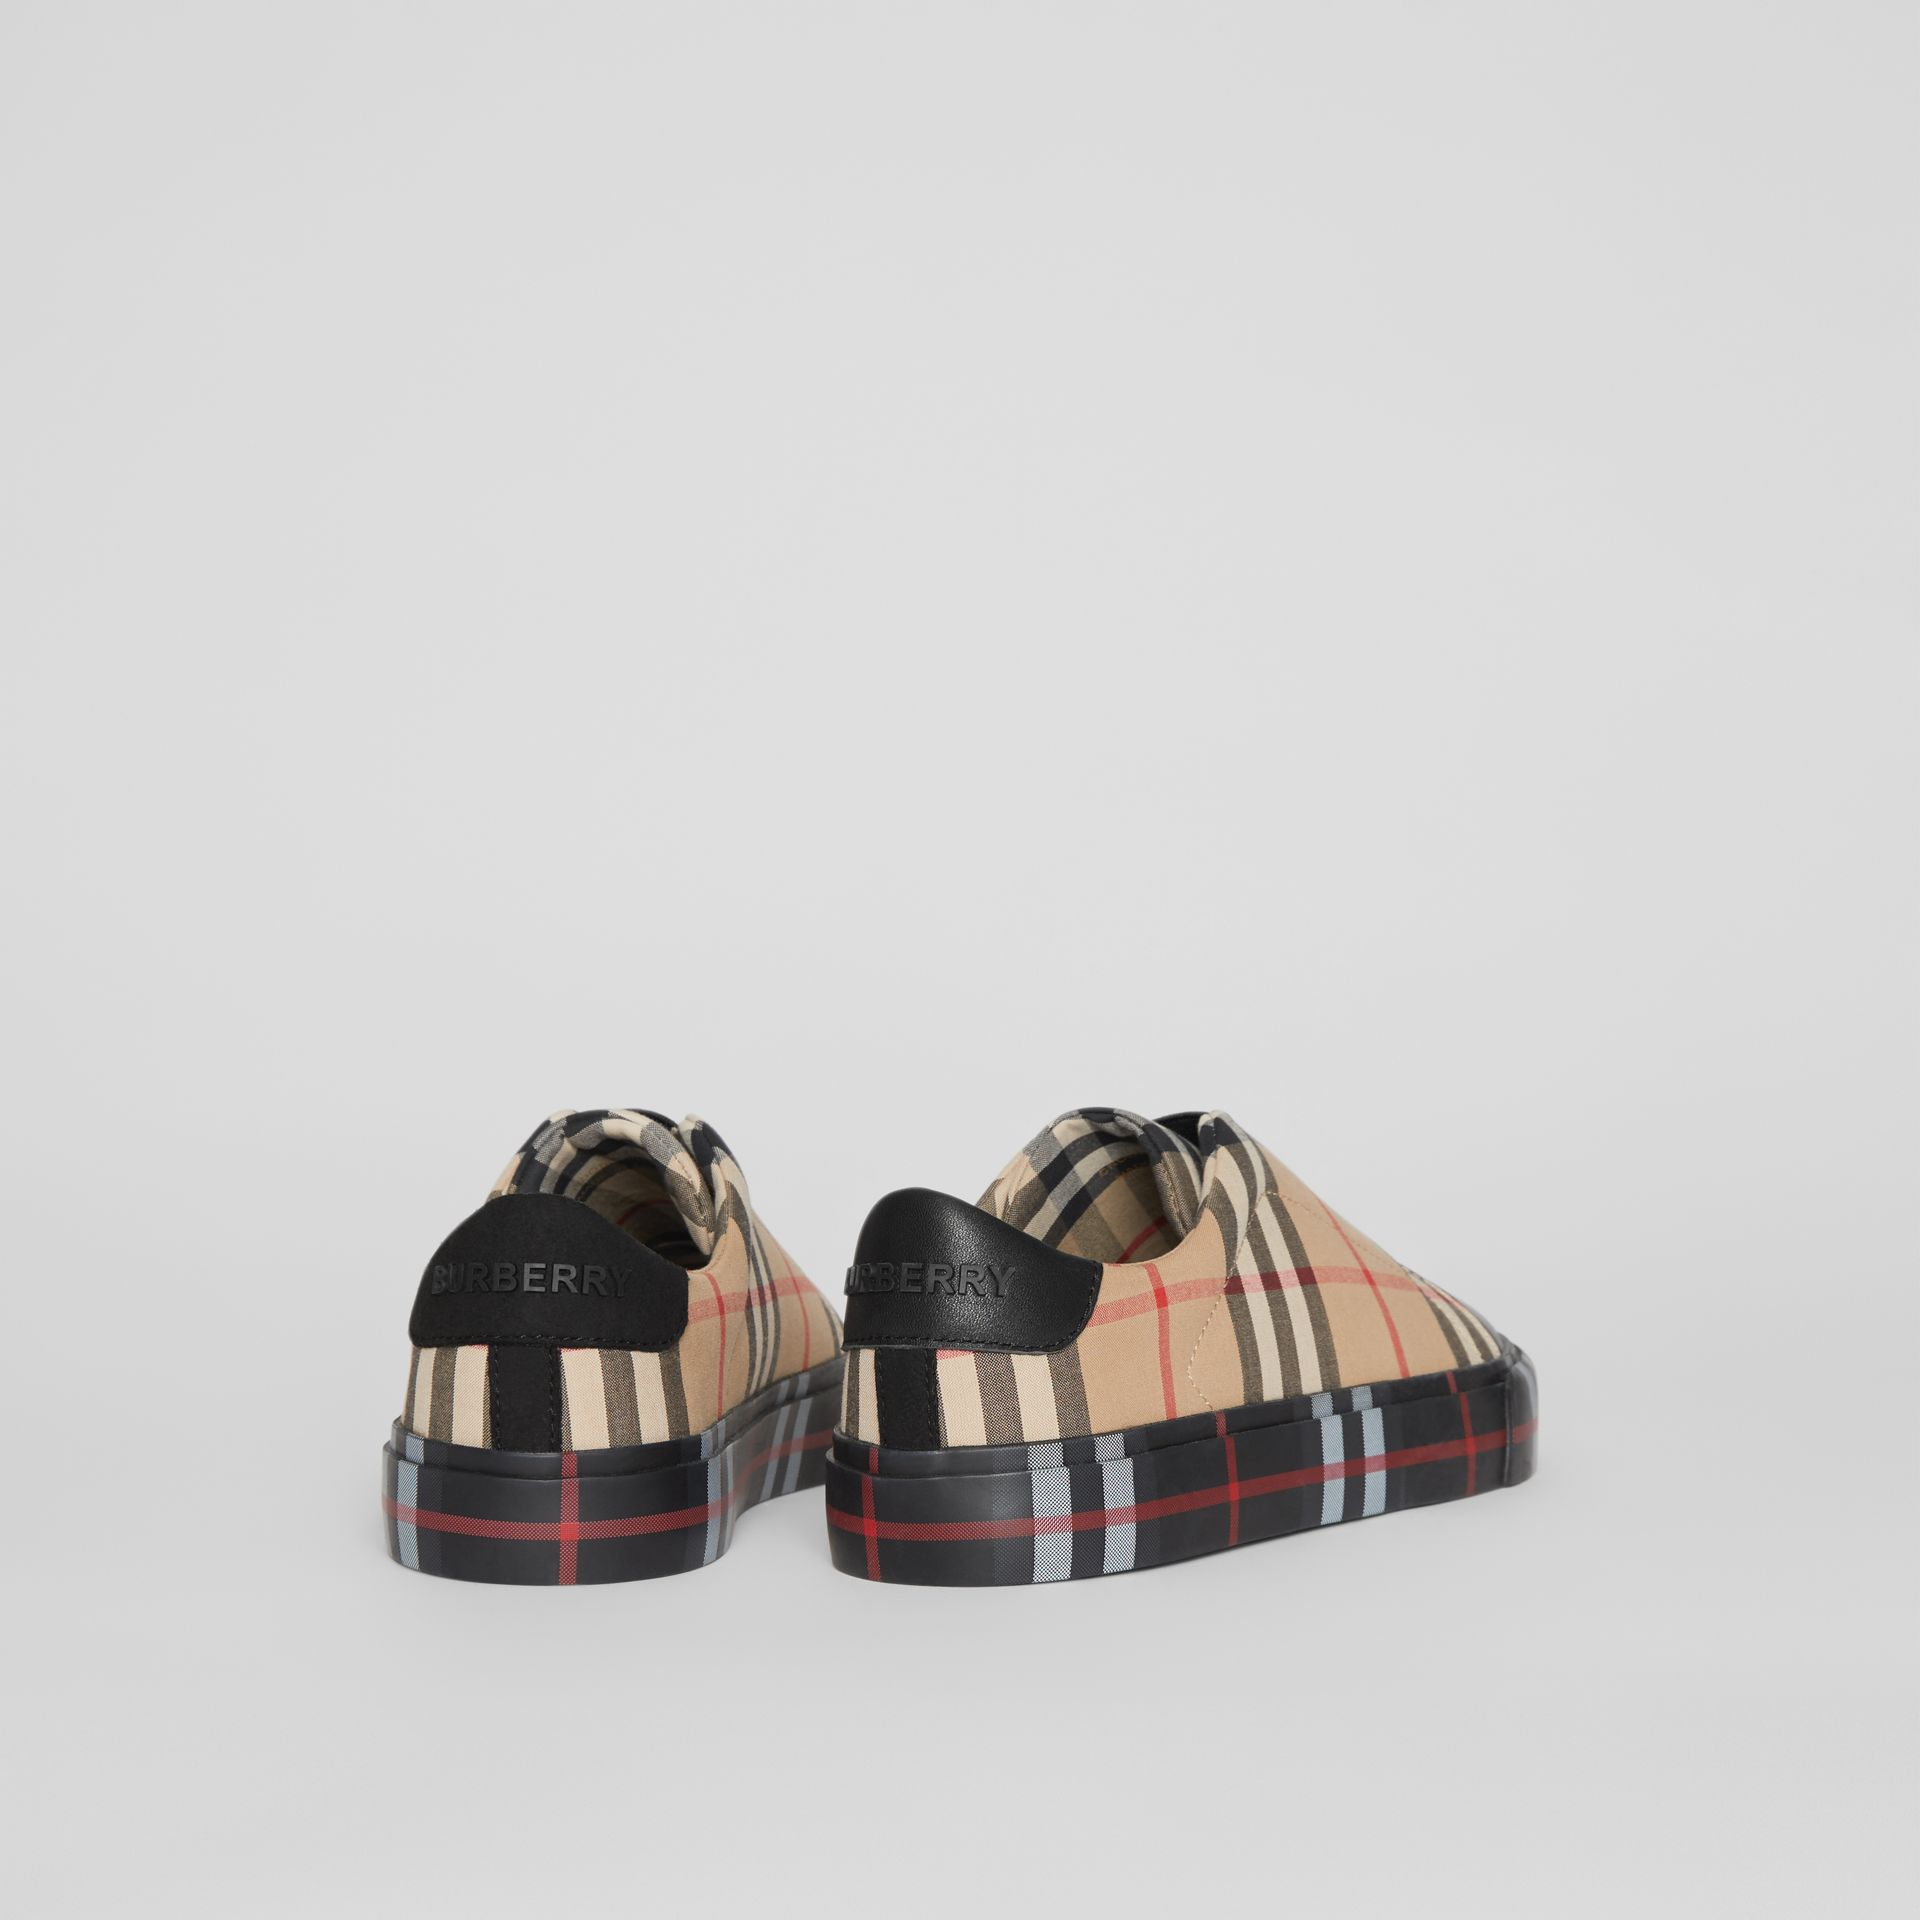 Contrast Check Slip-on Sneakers in Black/archive Beige - Children | Burberry Australia - gallery image 2